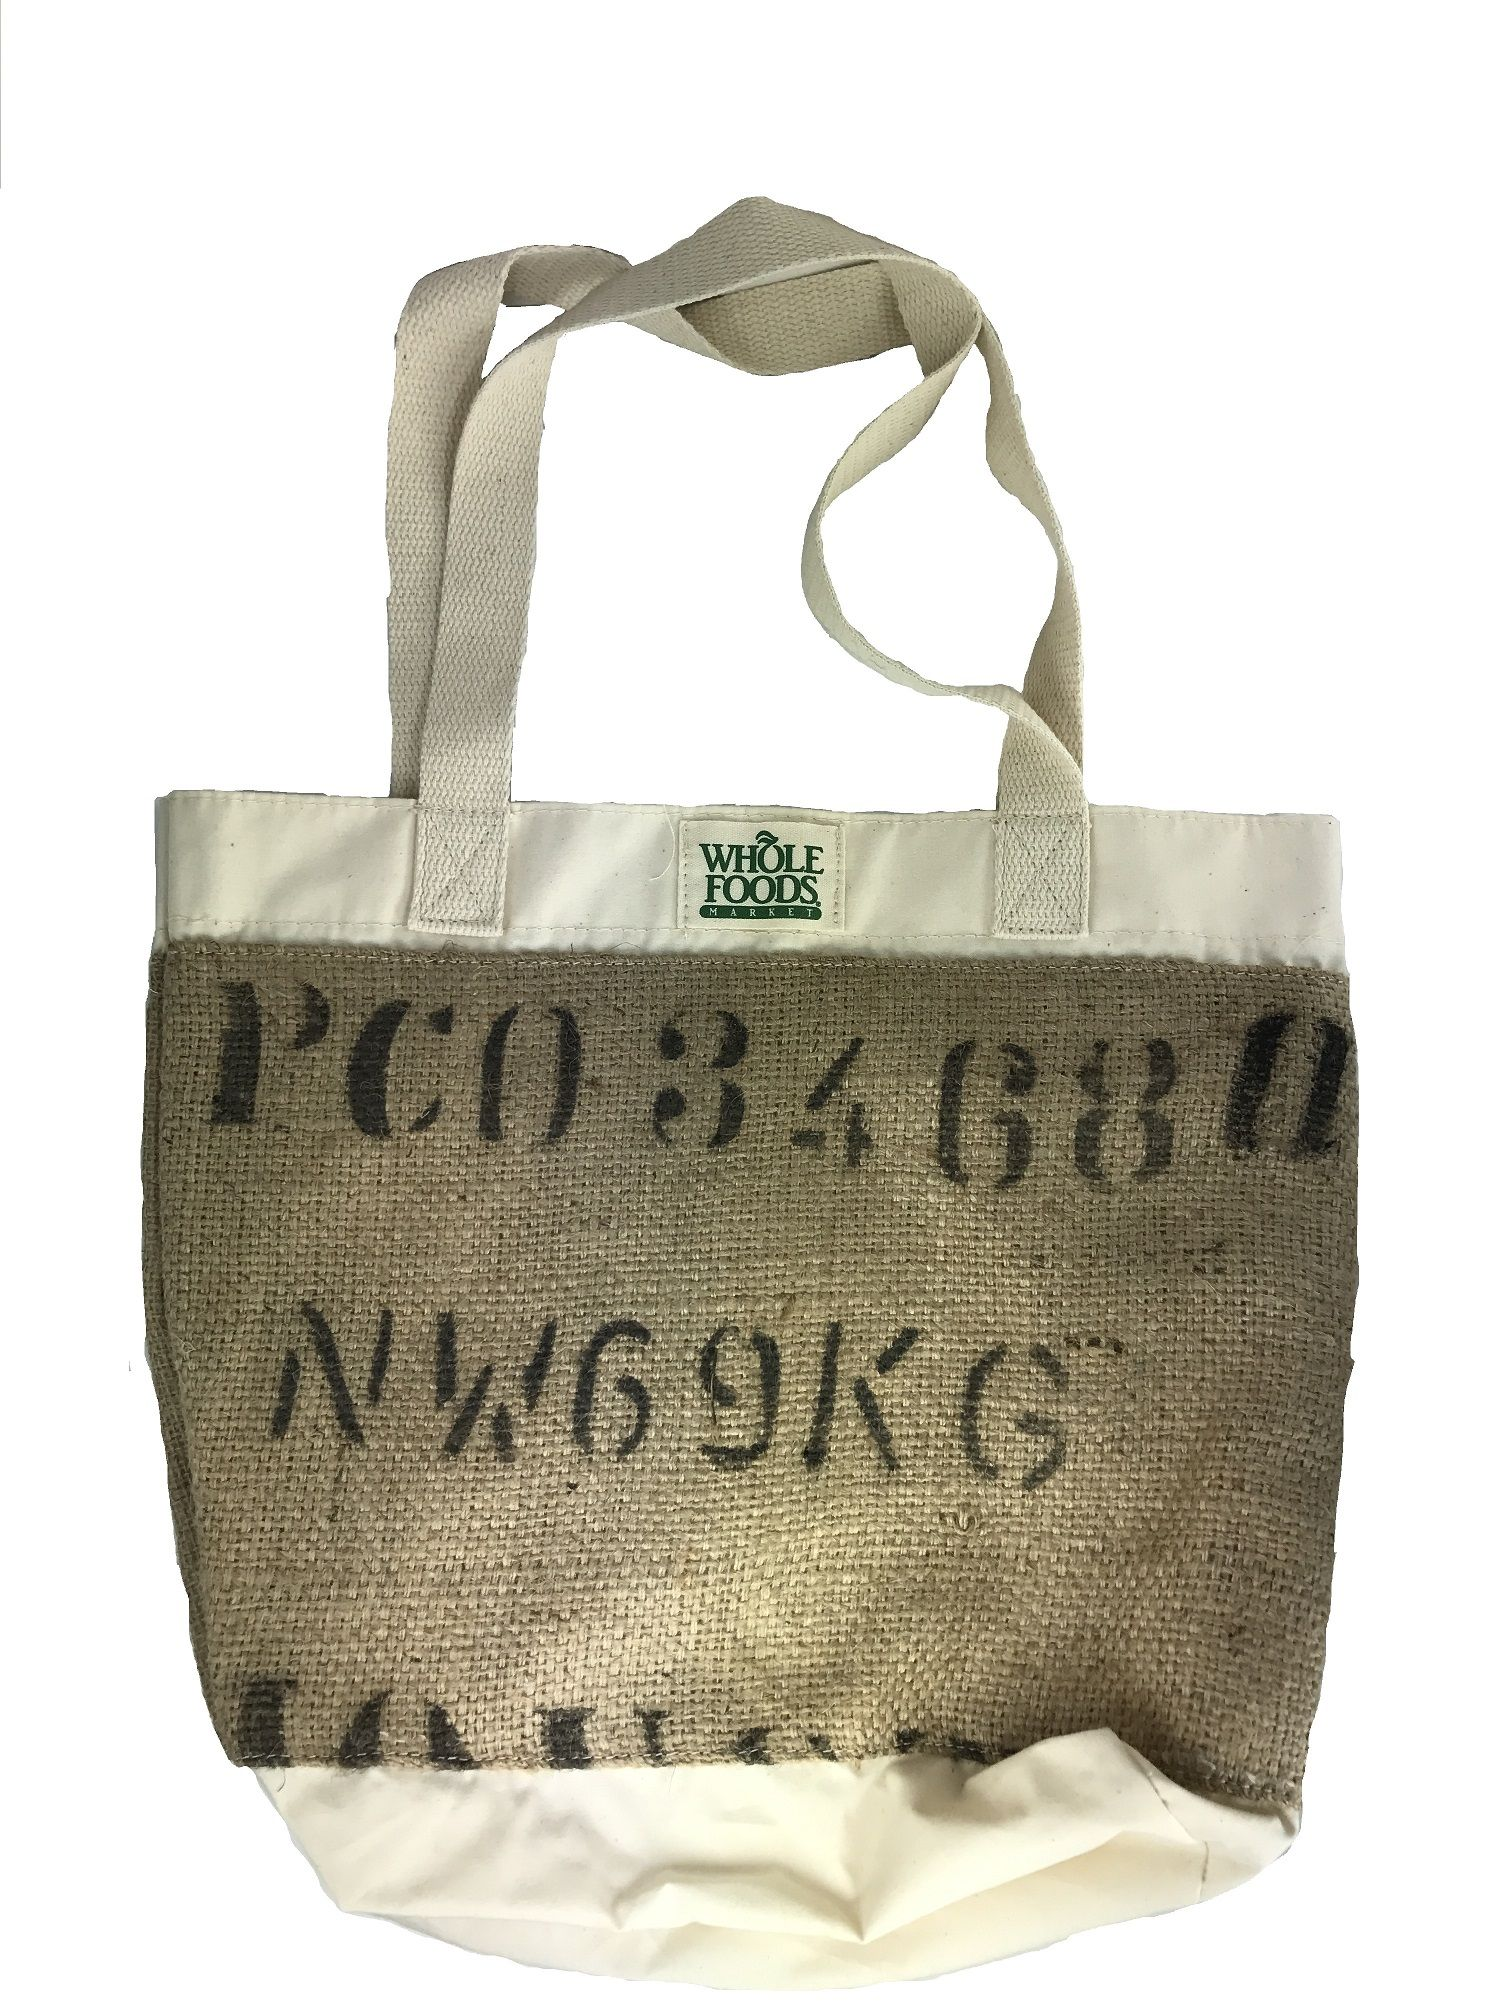 Whole Foods Burlap Ping Tote New Never Been Used 14 Tall 16